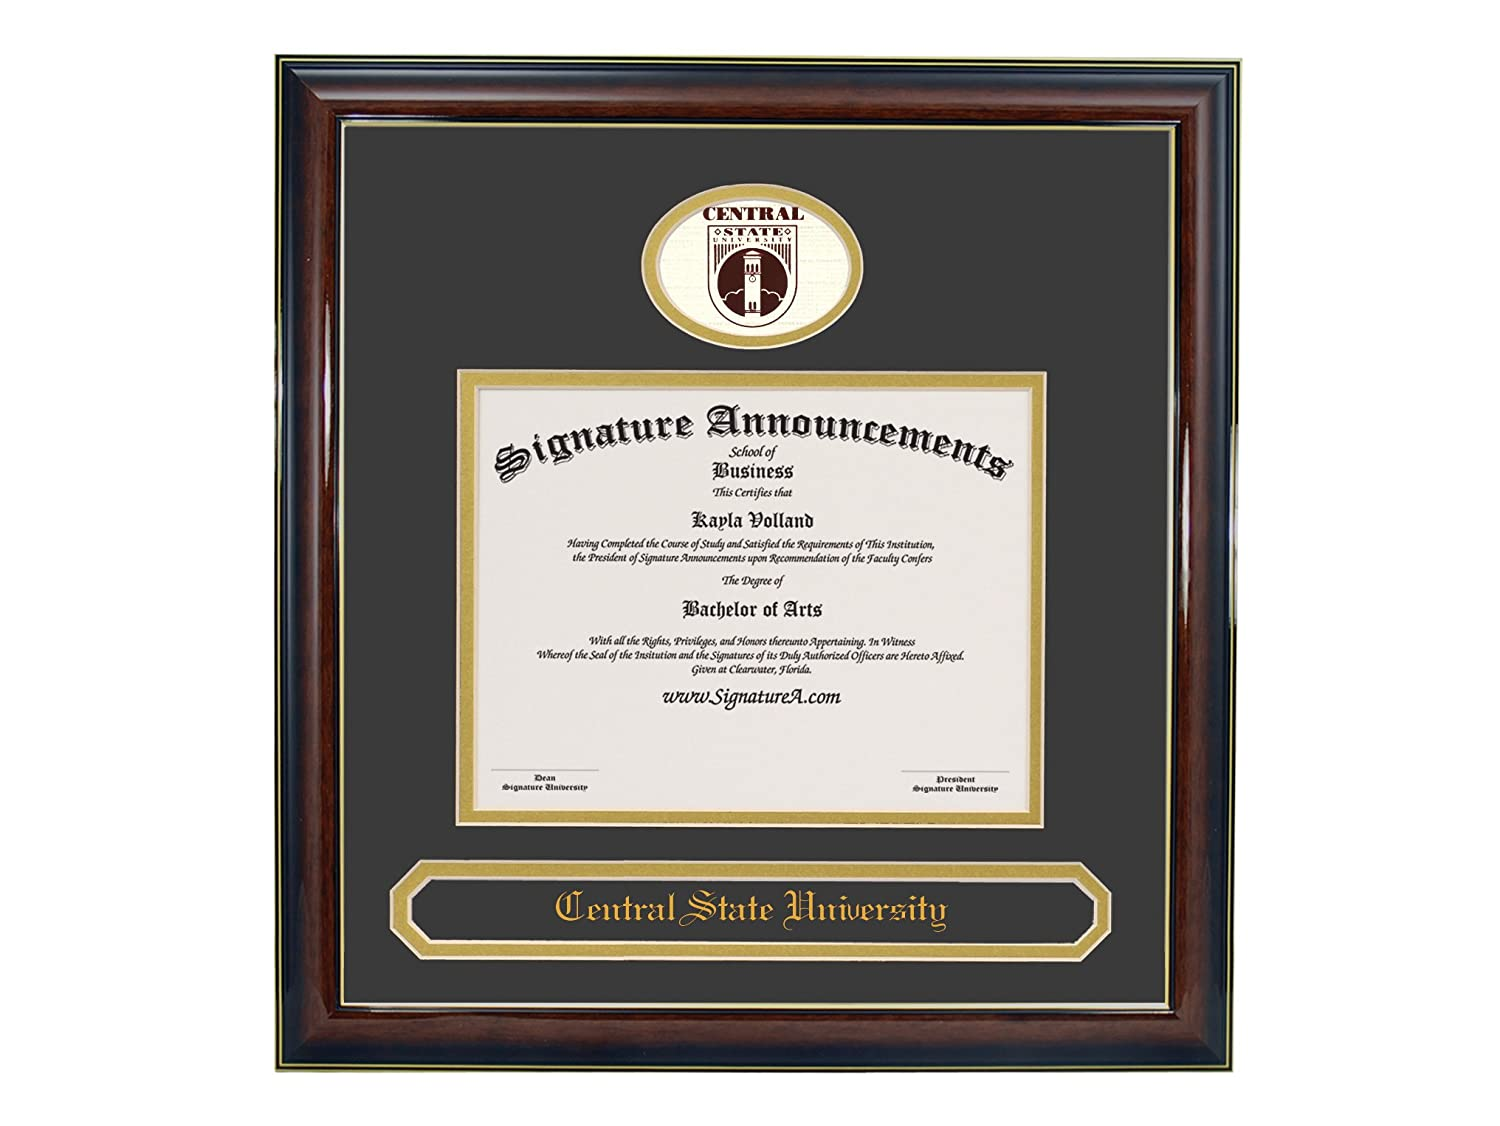 Signature Announcements Central-State-University Undergraduate Sculpted Foil Seal /& Name Graduation Diploma Frame 16 x 16 Gold Accent Gloss Mahogany